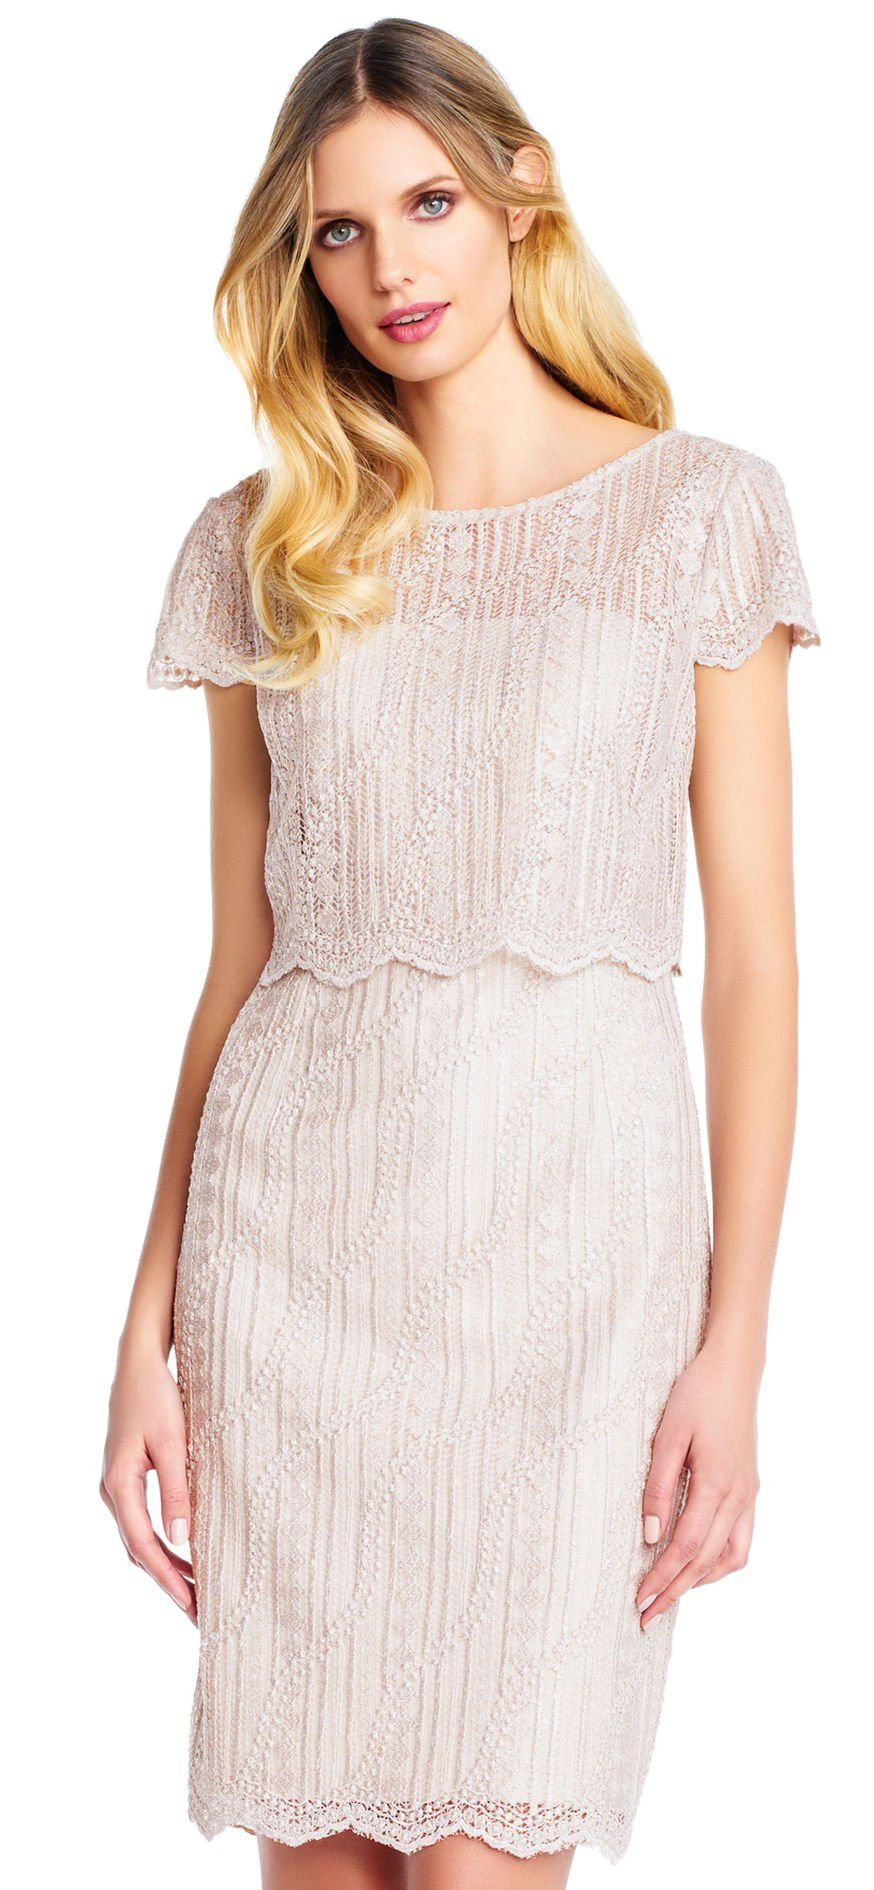 Scalloped popover embroidered lace dress with short sleeves